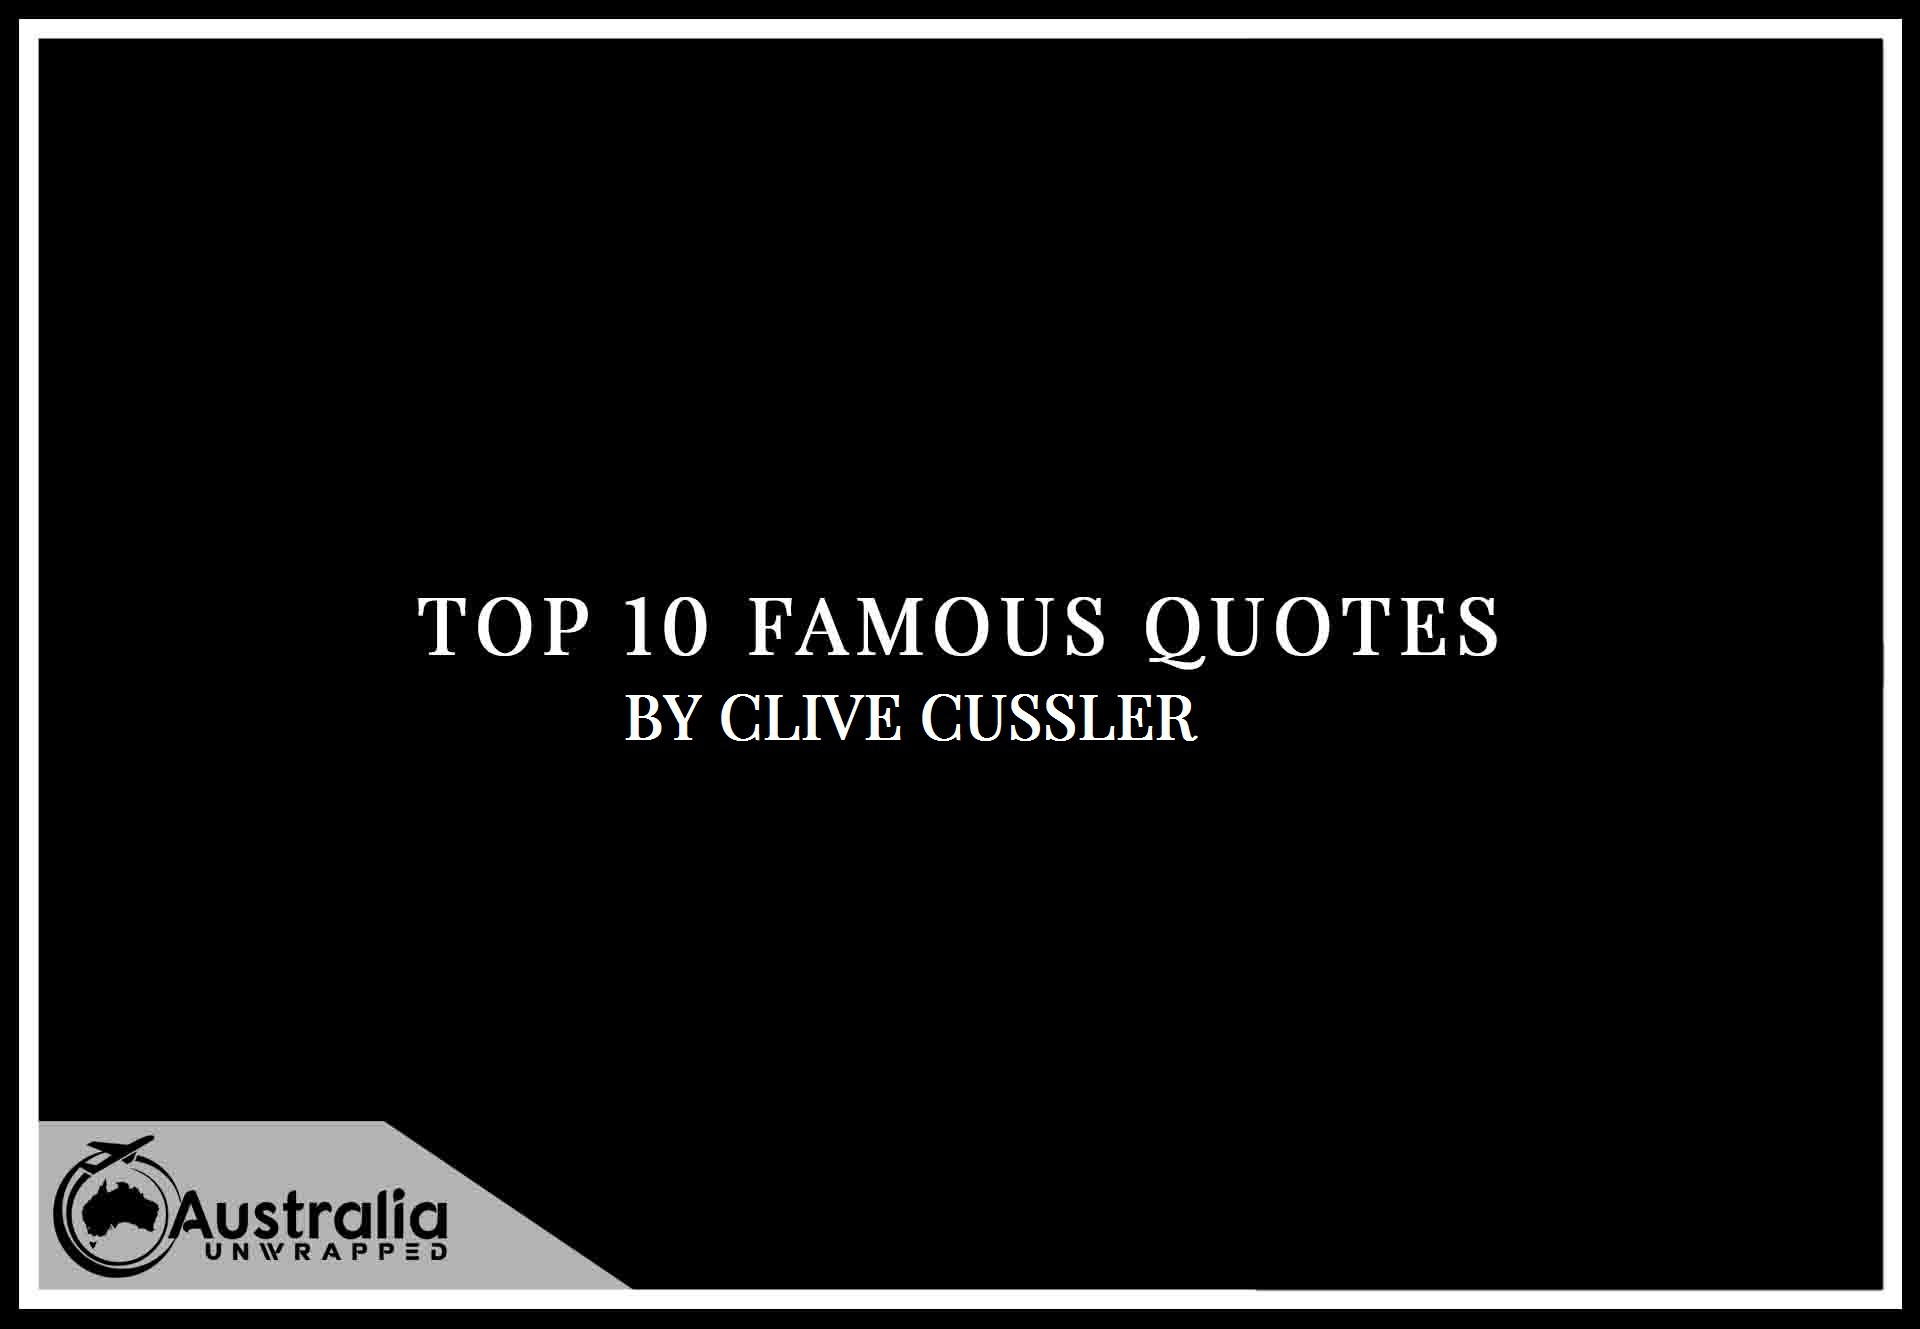 Clive Cussler's Top 10 Popular and Famous Quotes